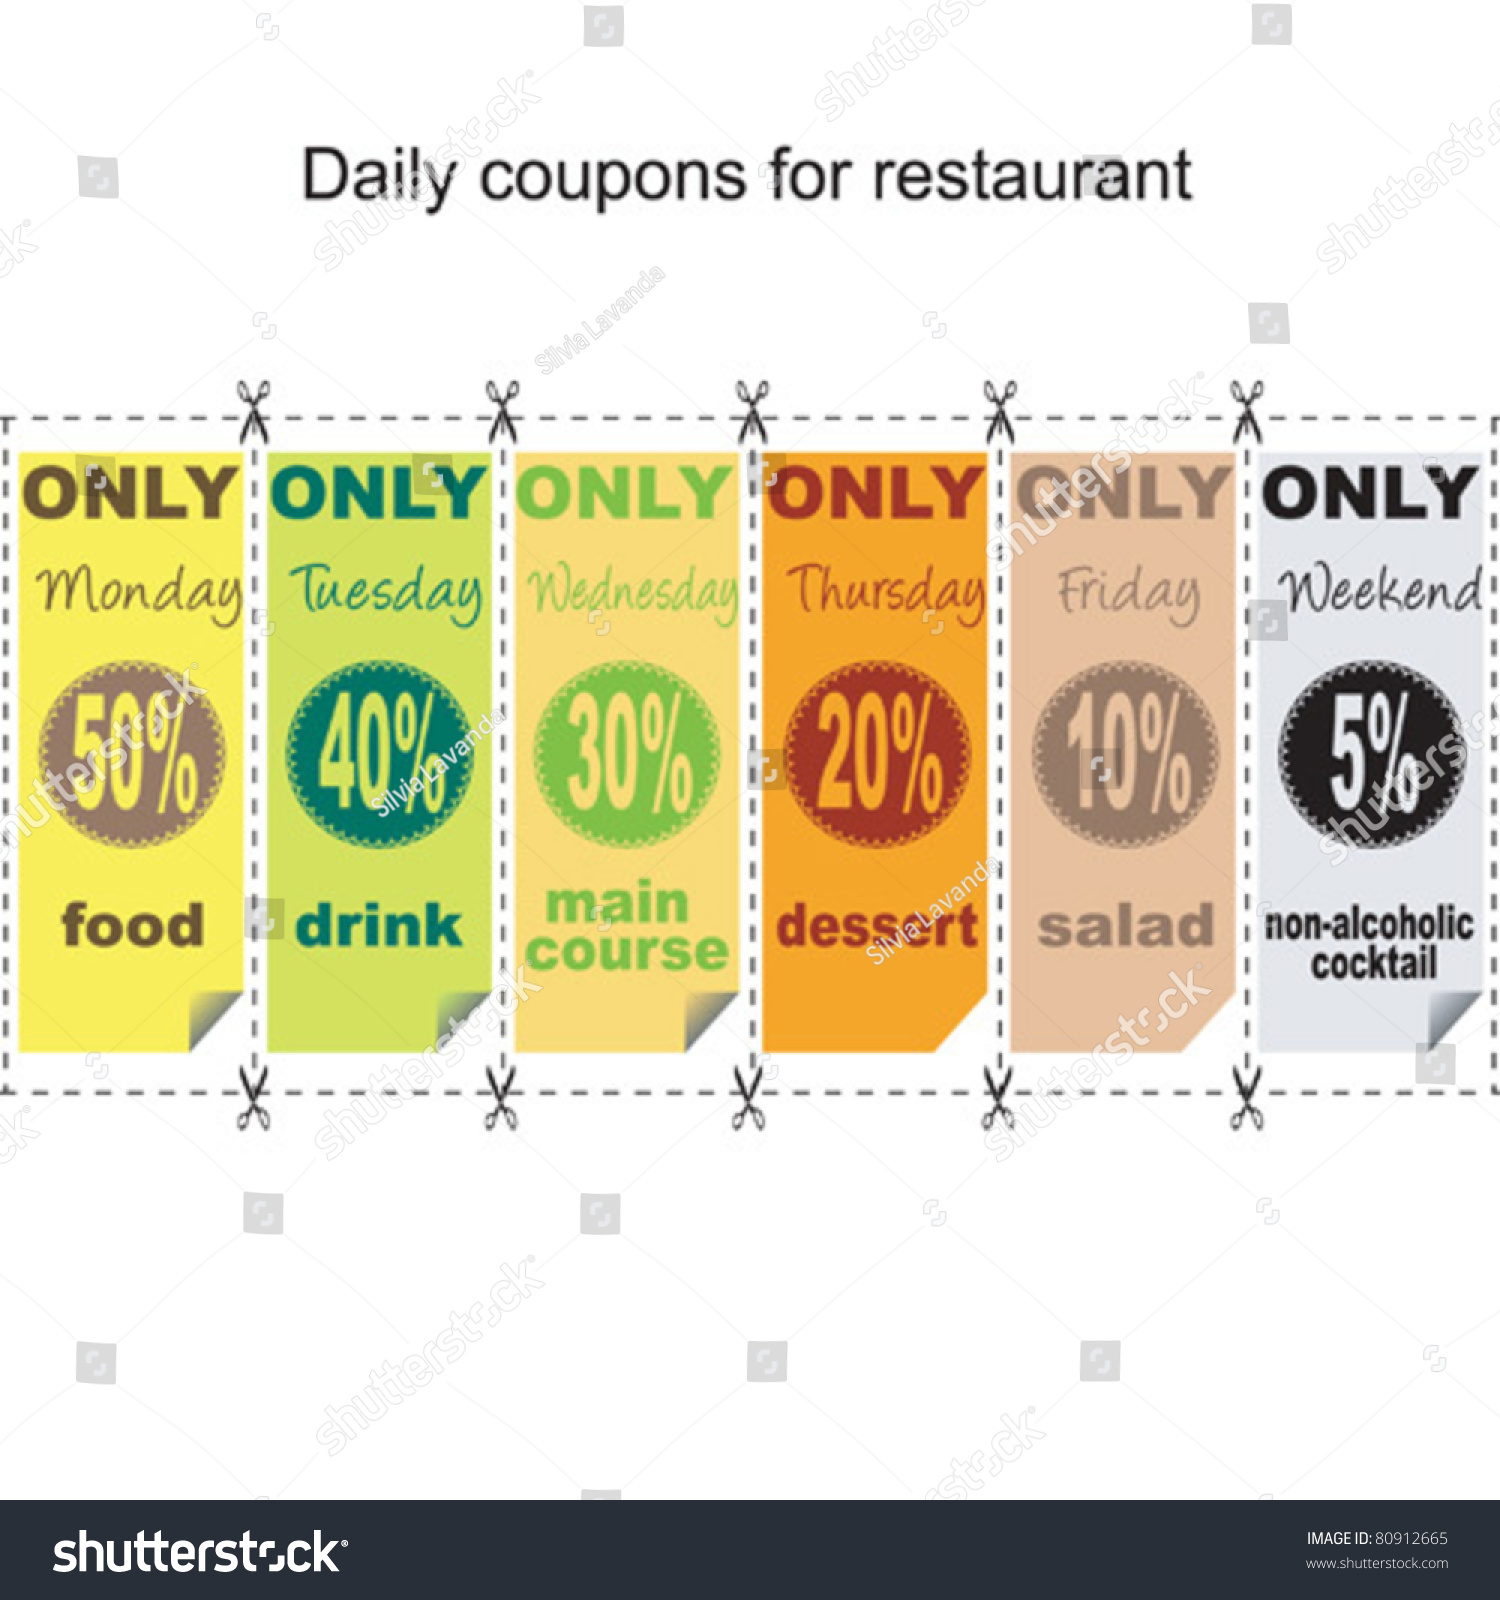 daily coupon for restaurant breakfast example